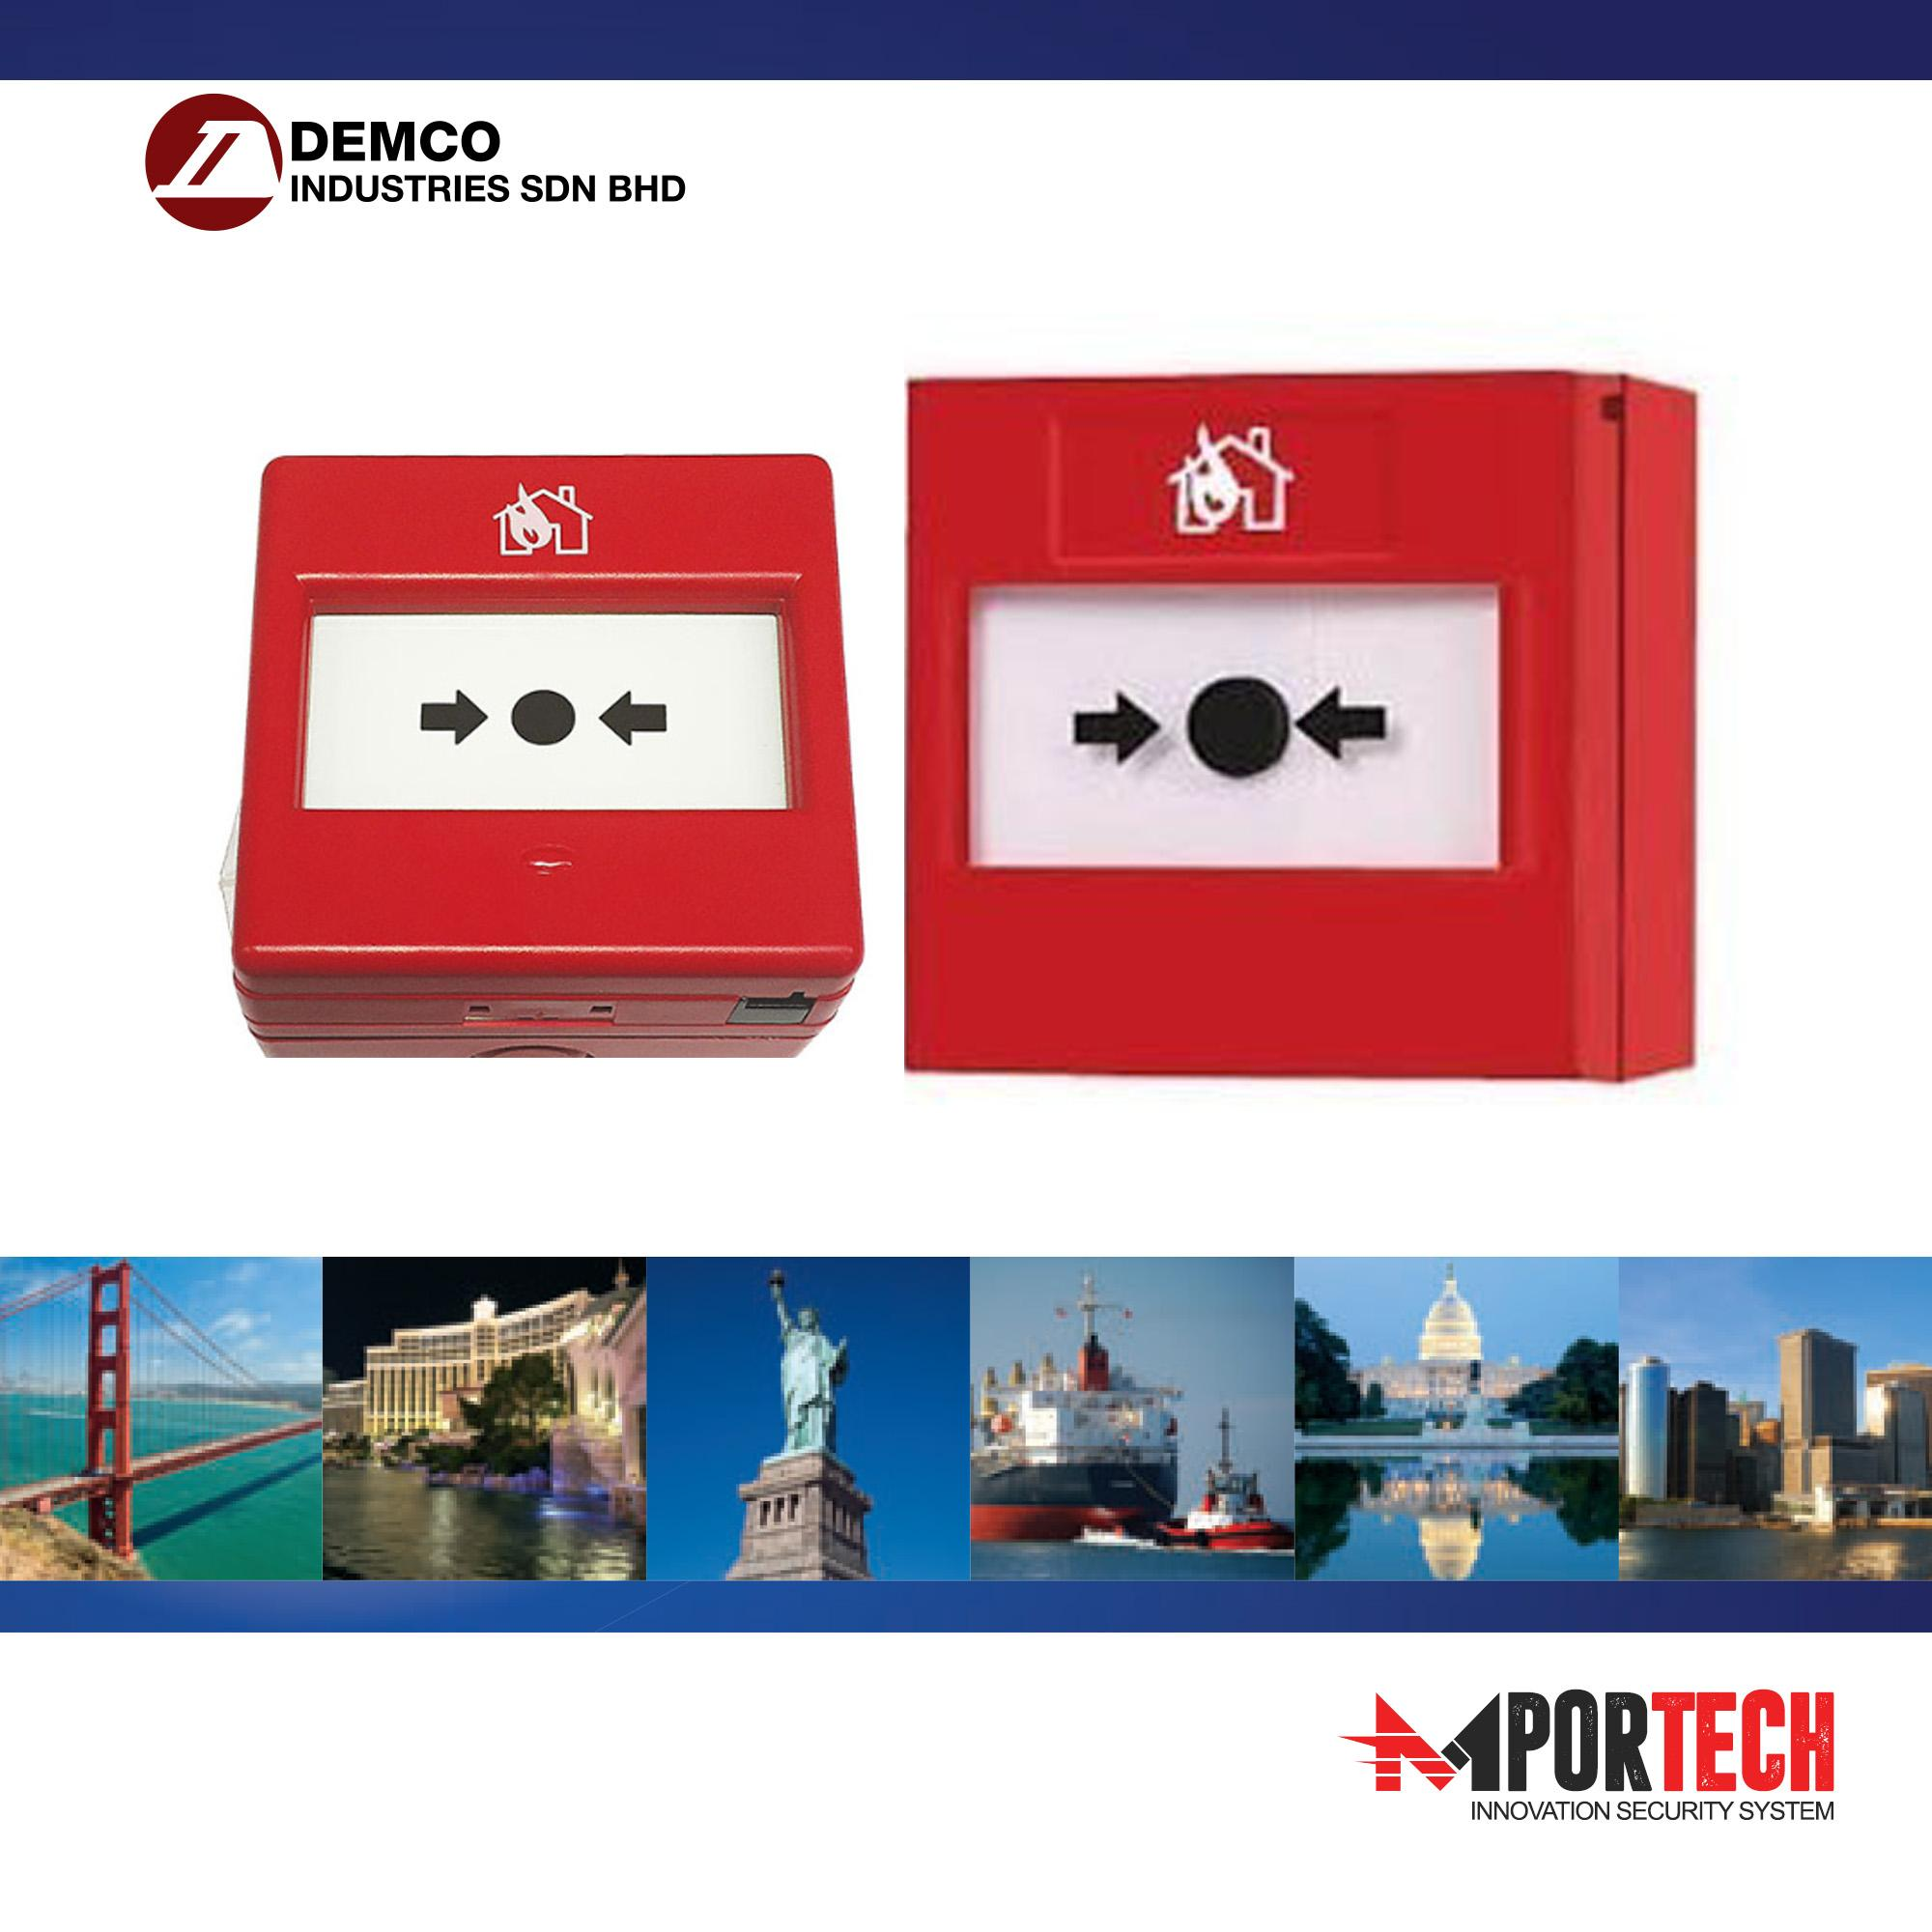 Fire Alarm Pull Station Resettable Manual Call Point 12/24V DC 10A (Red)  D-128 - Demco Malaysia